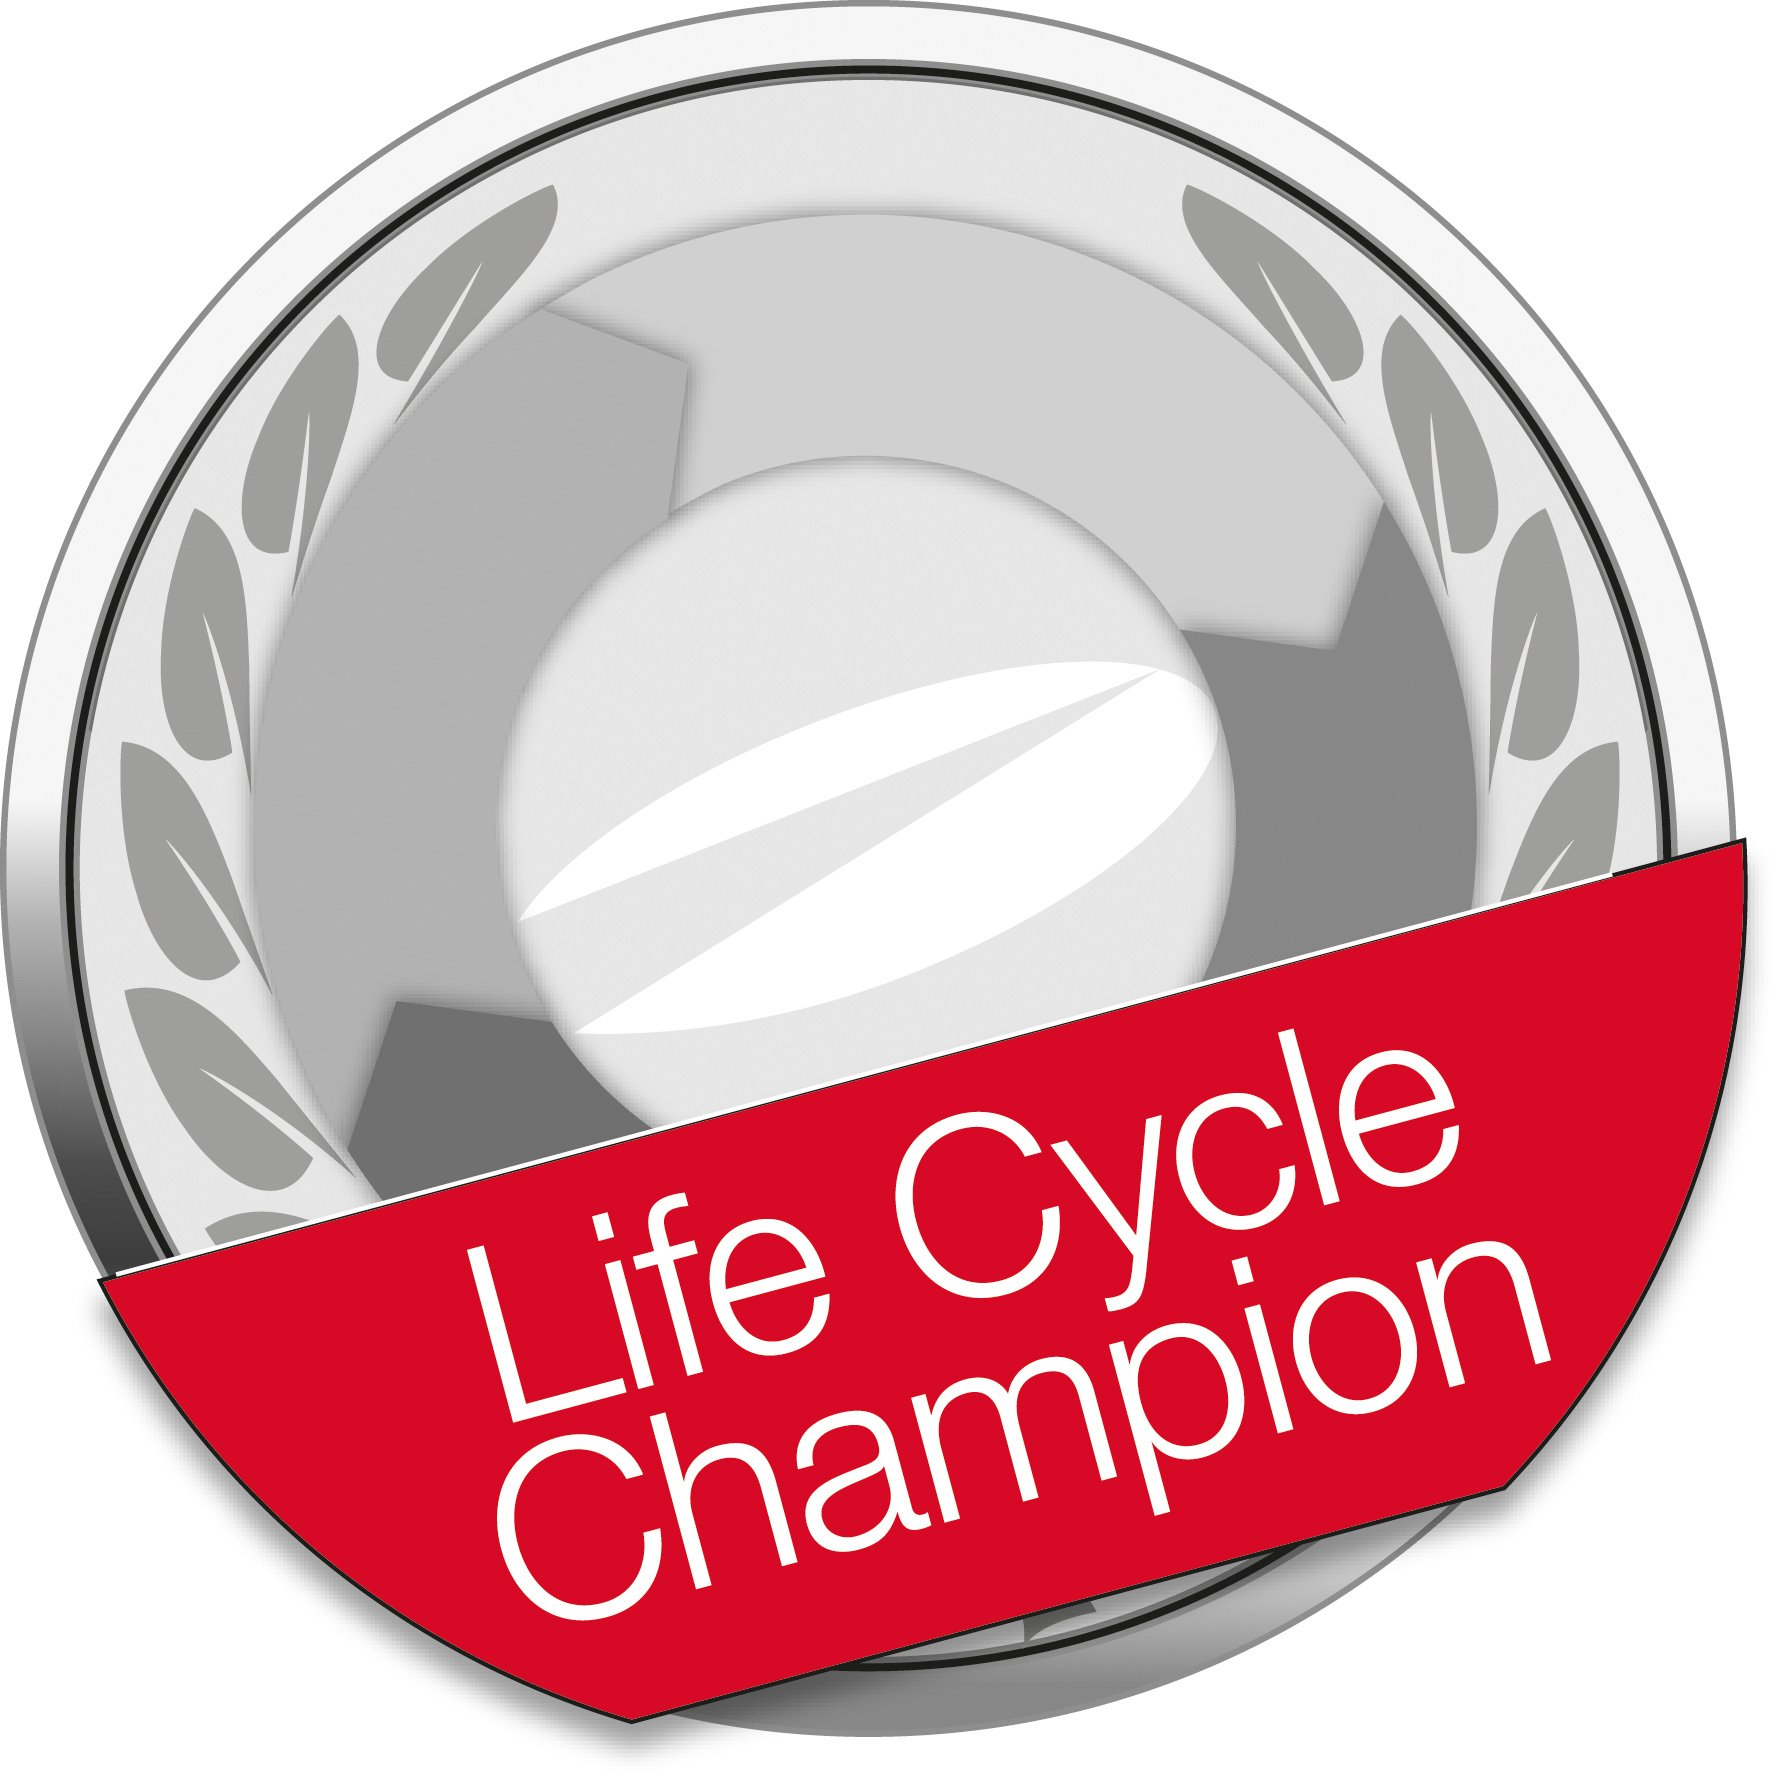 Life cycle champion icon